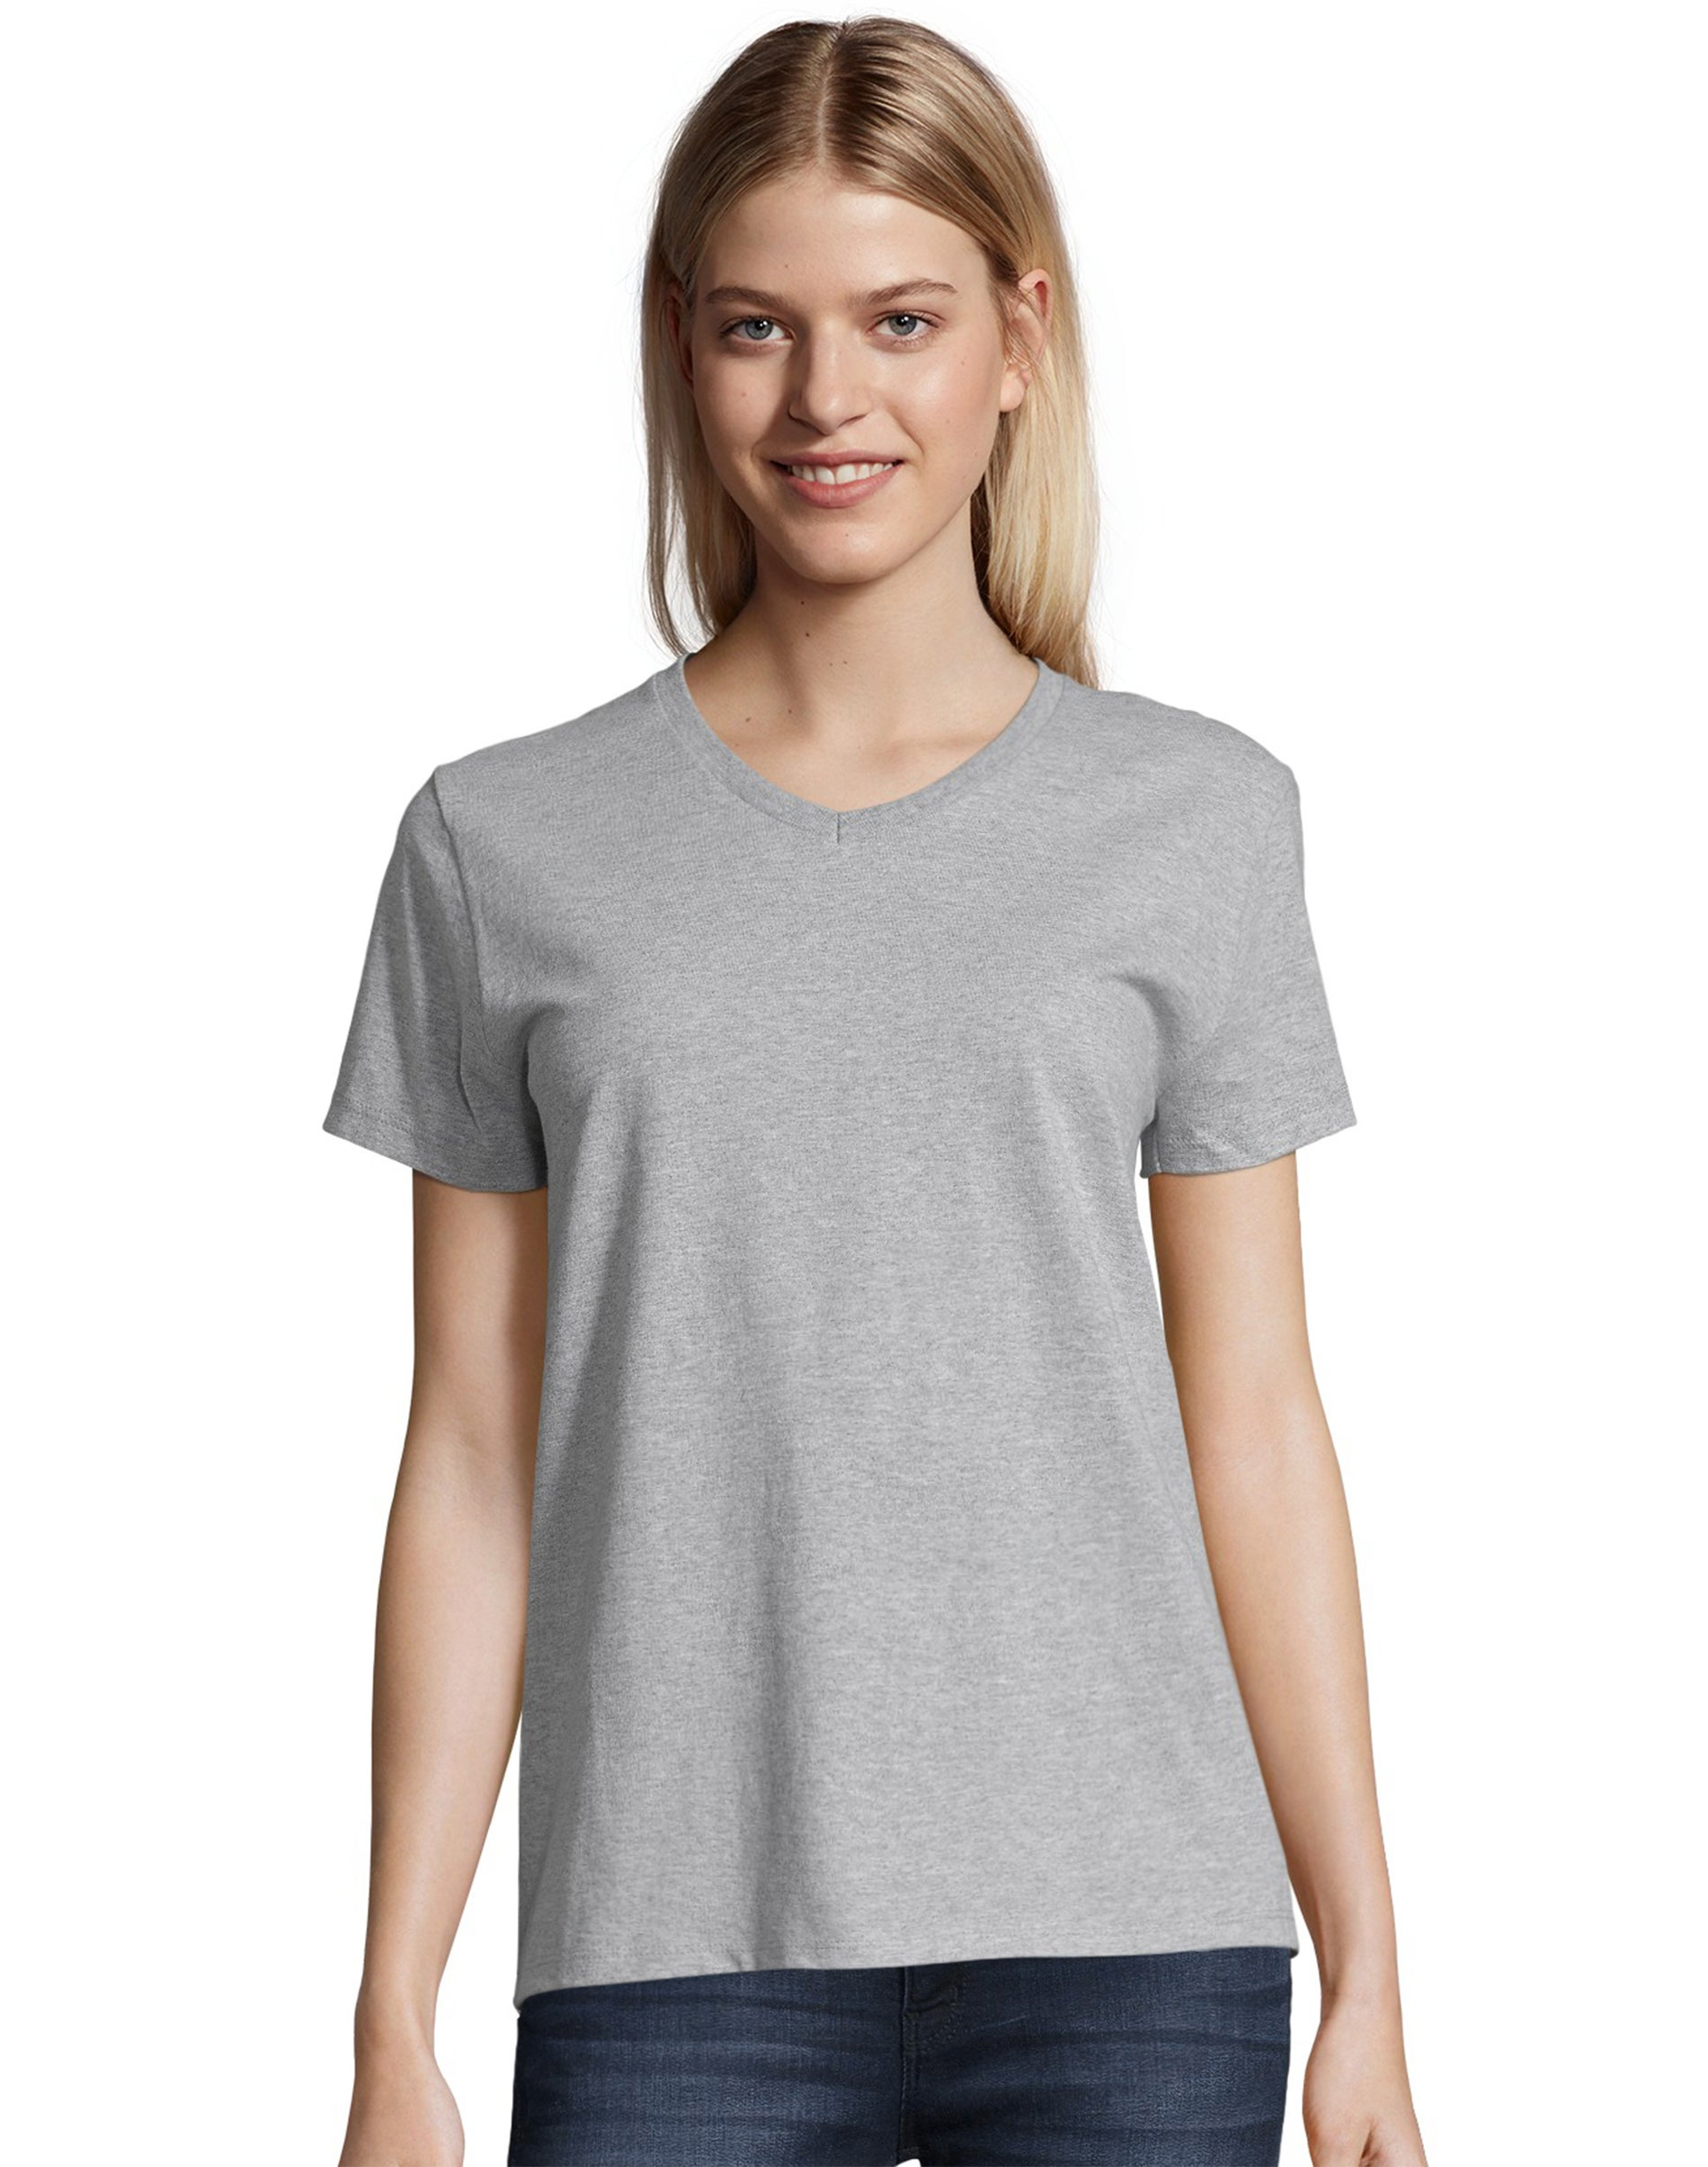 Hanes Womens 2-Pack T-Shirt V-Neck Tee ComfortSoft Relaxed Fit Short Sleeve